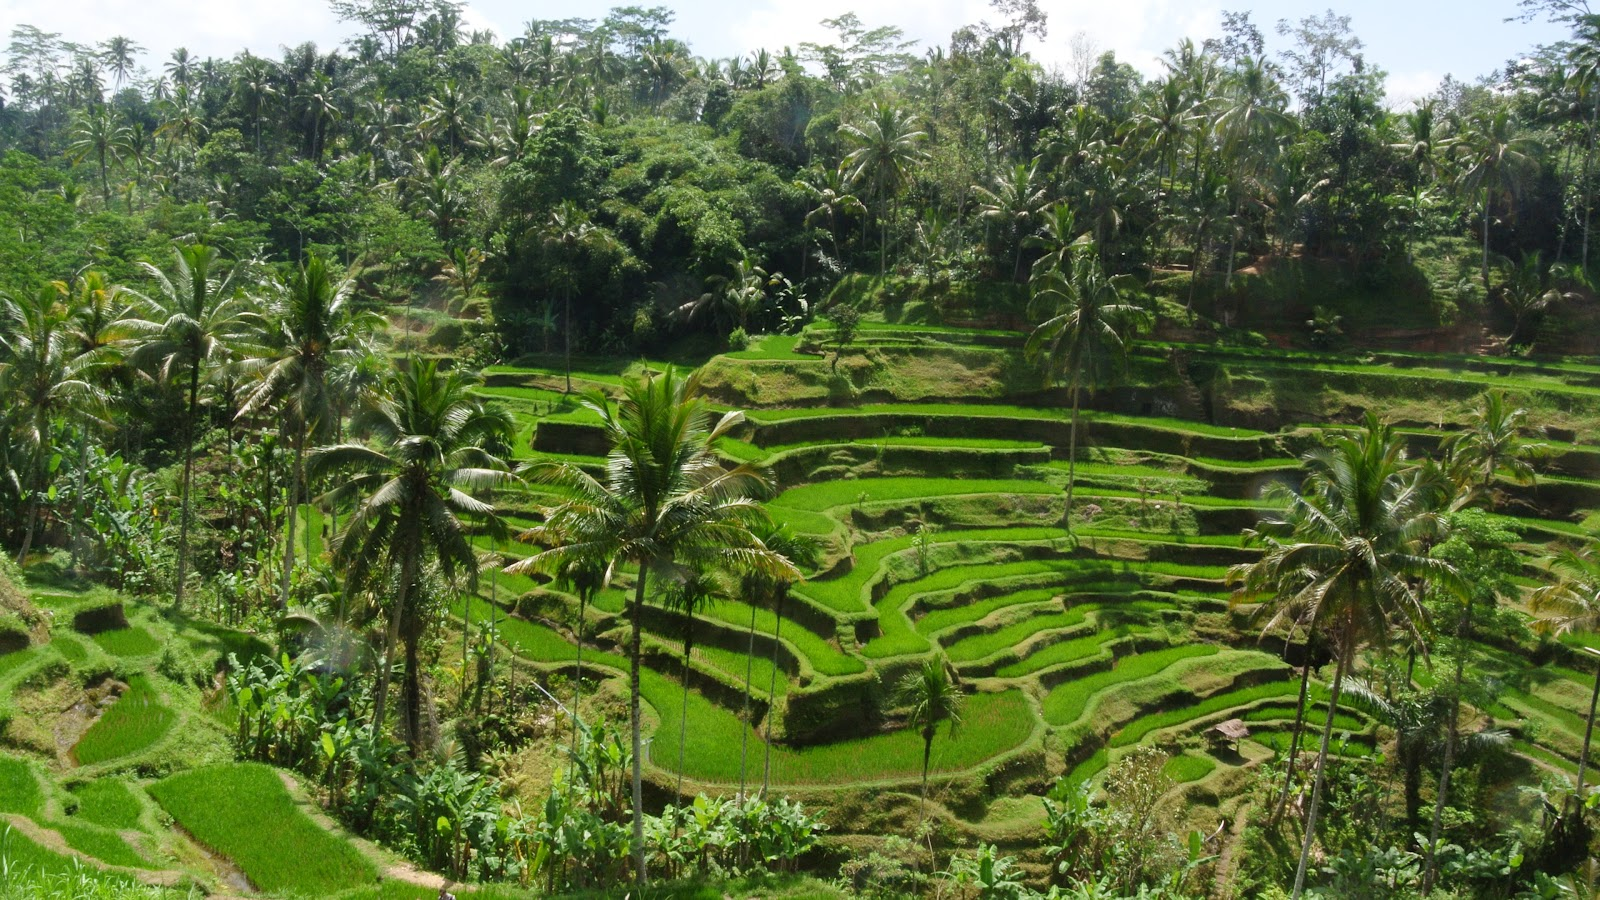 ubud chat Host to some of bali's most iconic landscapes, ubud is one of the most beautiful spots on the island rice paddies, raw food, markets, temples + monkeys.